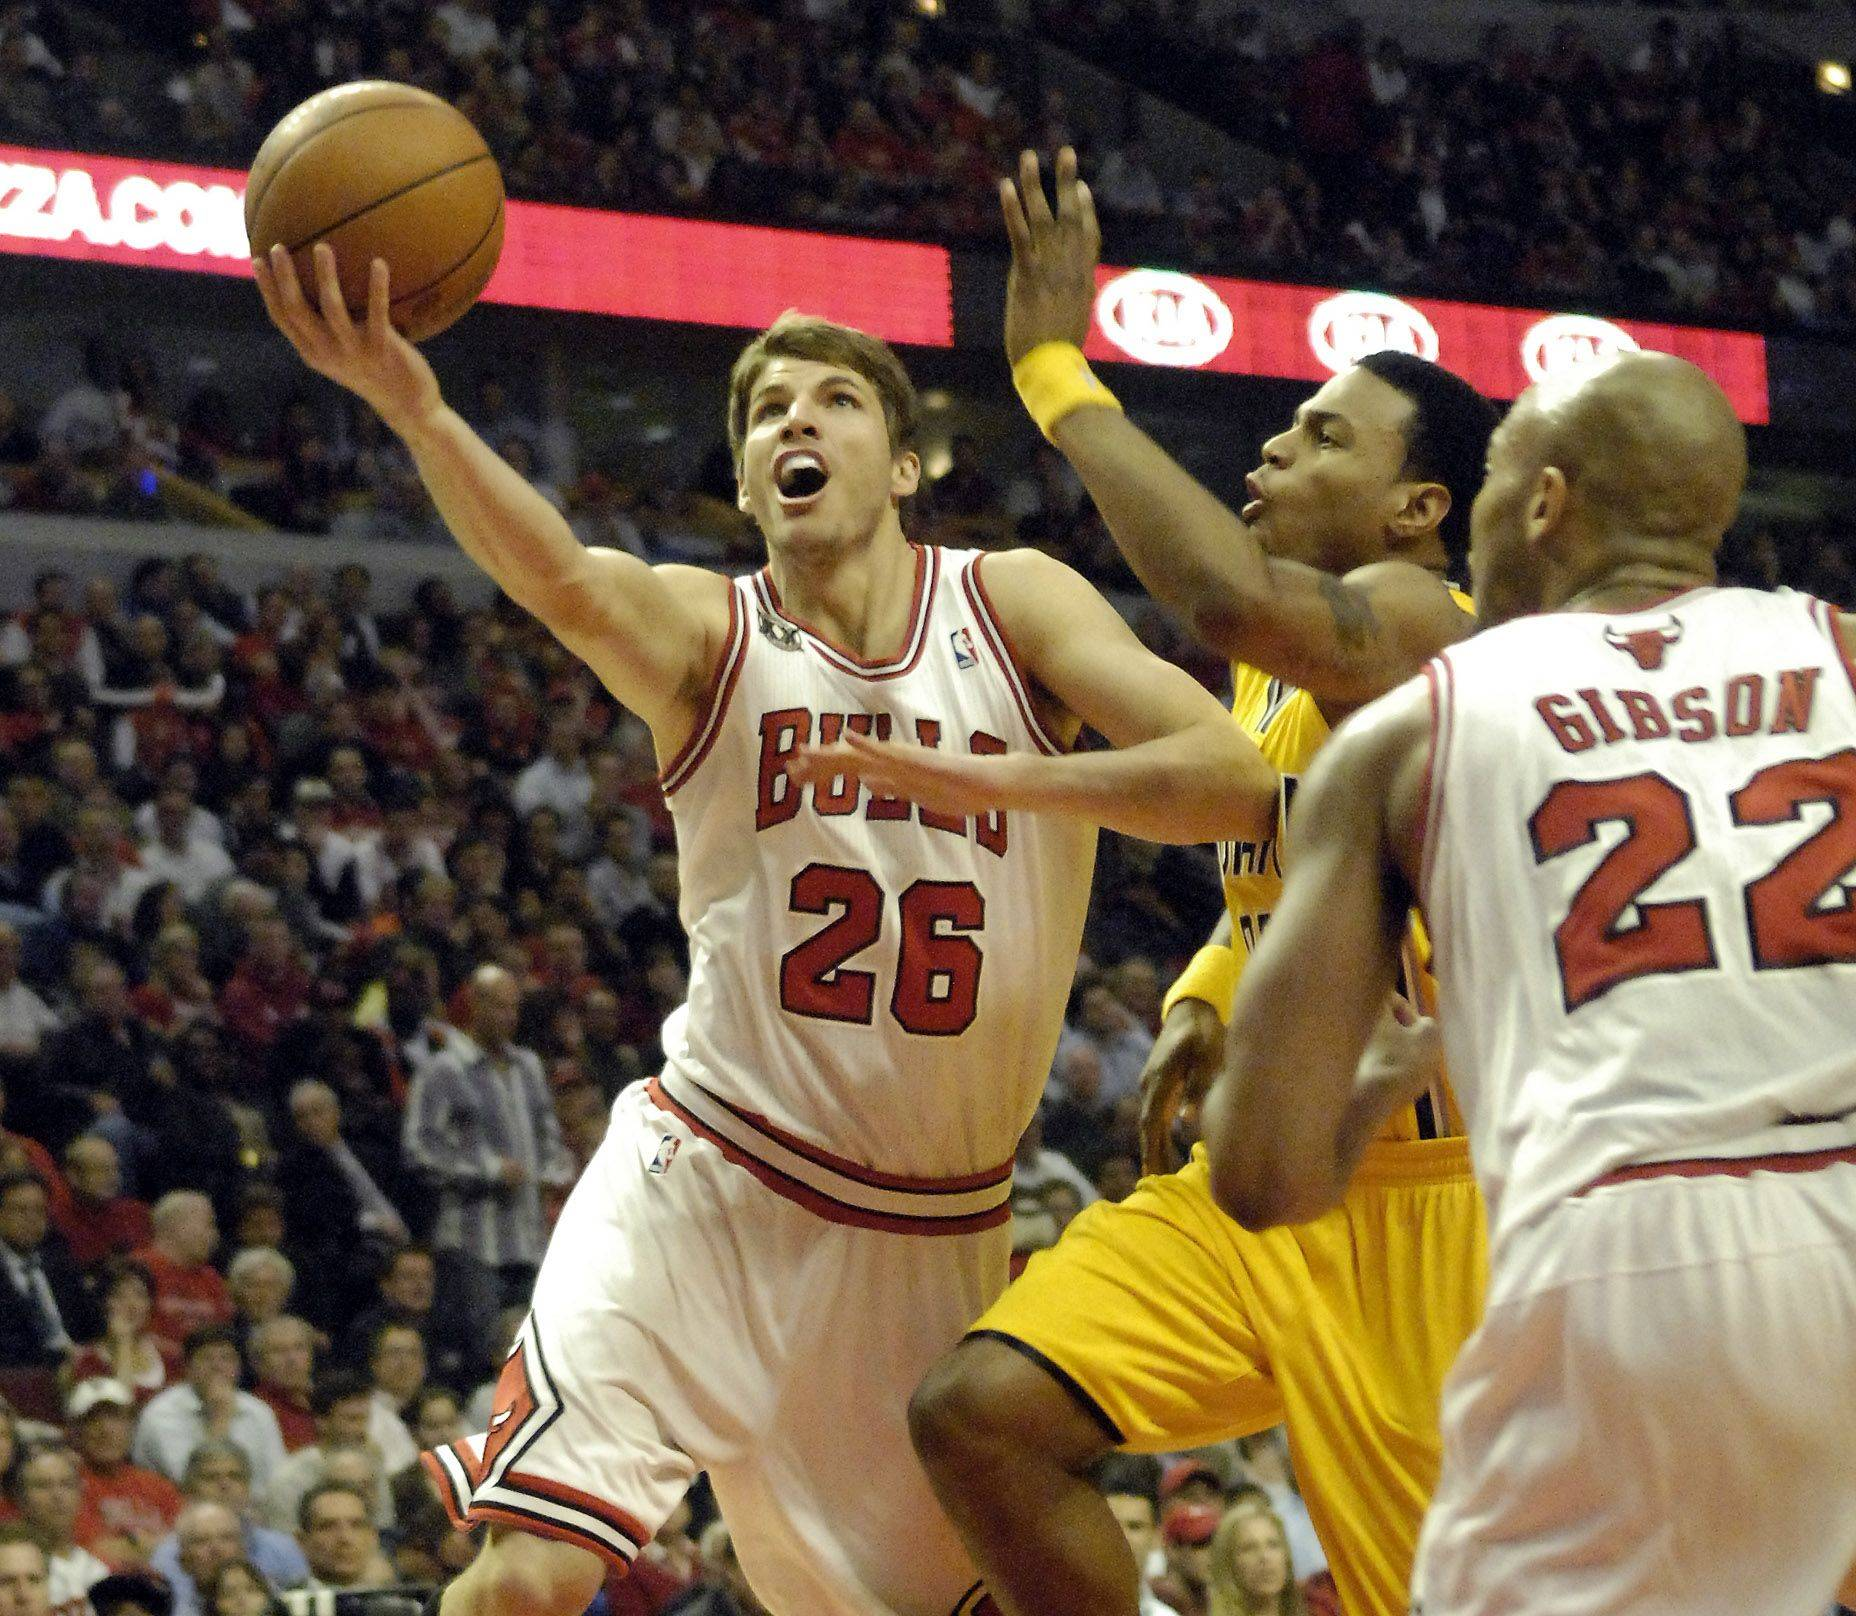 Chicago Bulls shooting guard Kyle Korver drives for a first half layup during game 5 of the NBA Eastern Conference quarterfinals.